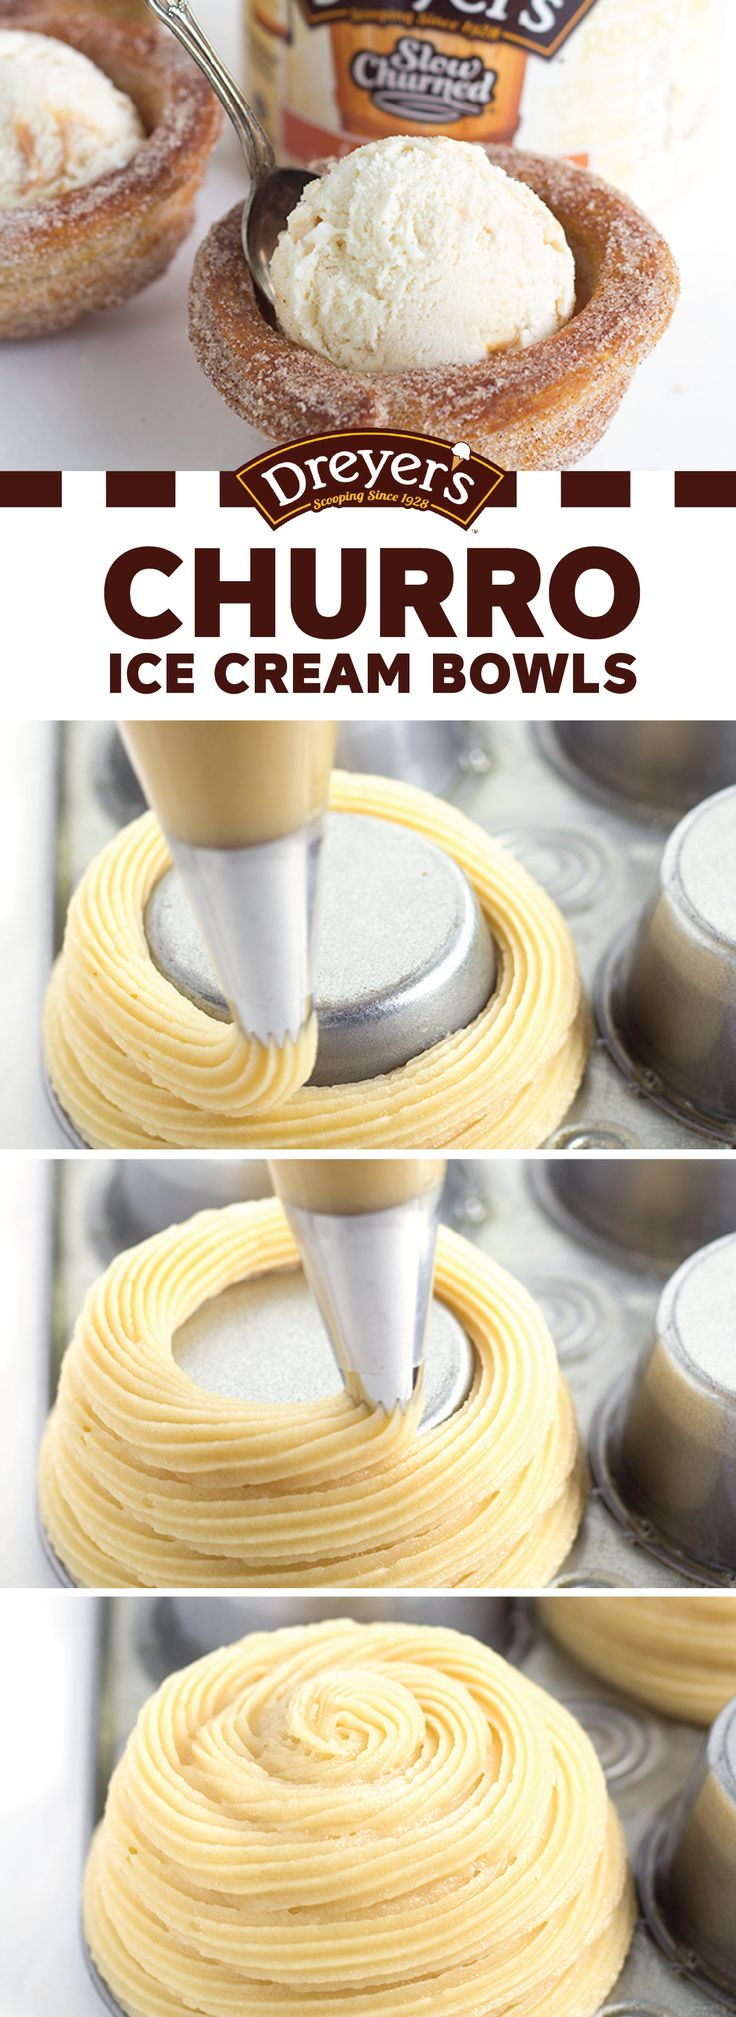 Bring out the cinnamon sugar and let's get baking in the kitchen! Your kids are sure to love helping you make this fun and creative recipe for Churro Ice Cream Bowls—especially since it involves a delicious scoop of Dreyer's Slow Churned Caramel Delight light ice cream. Could there be a more perfect treat for summer?!